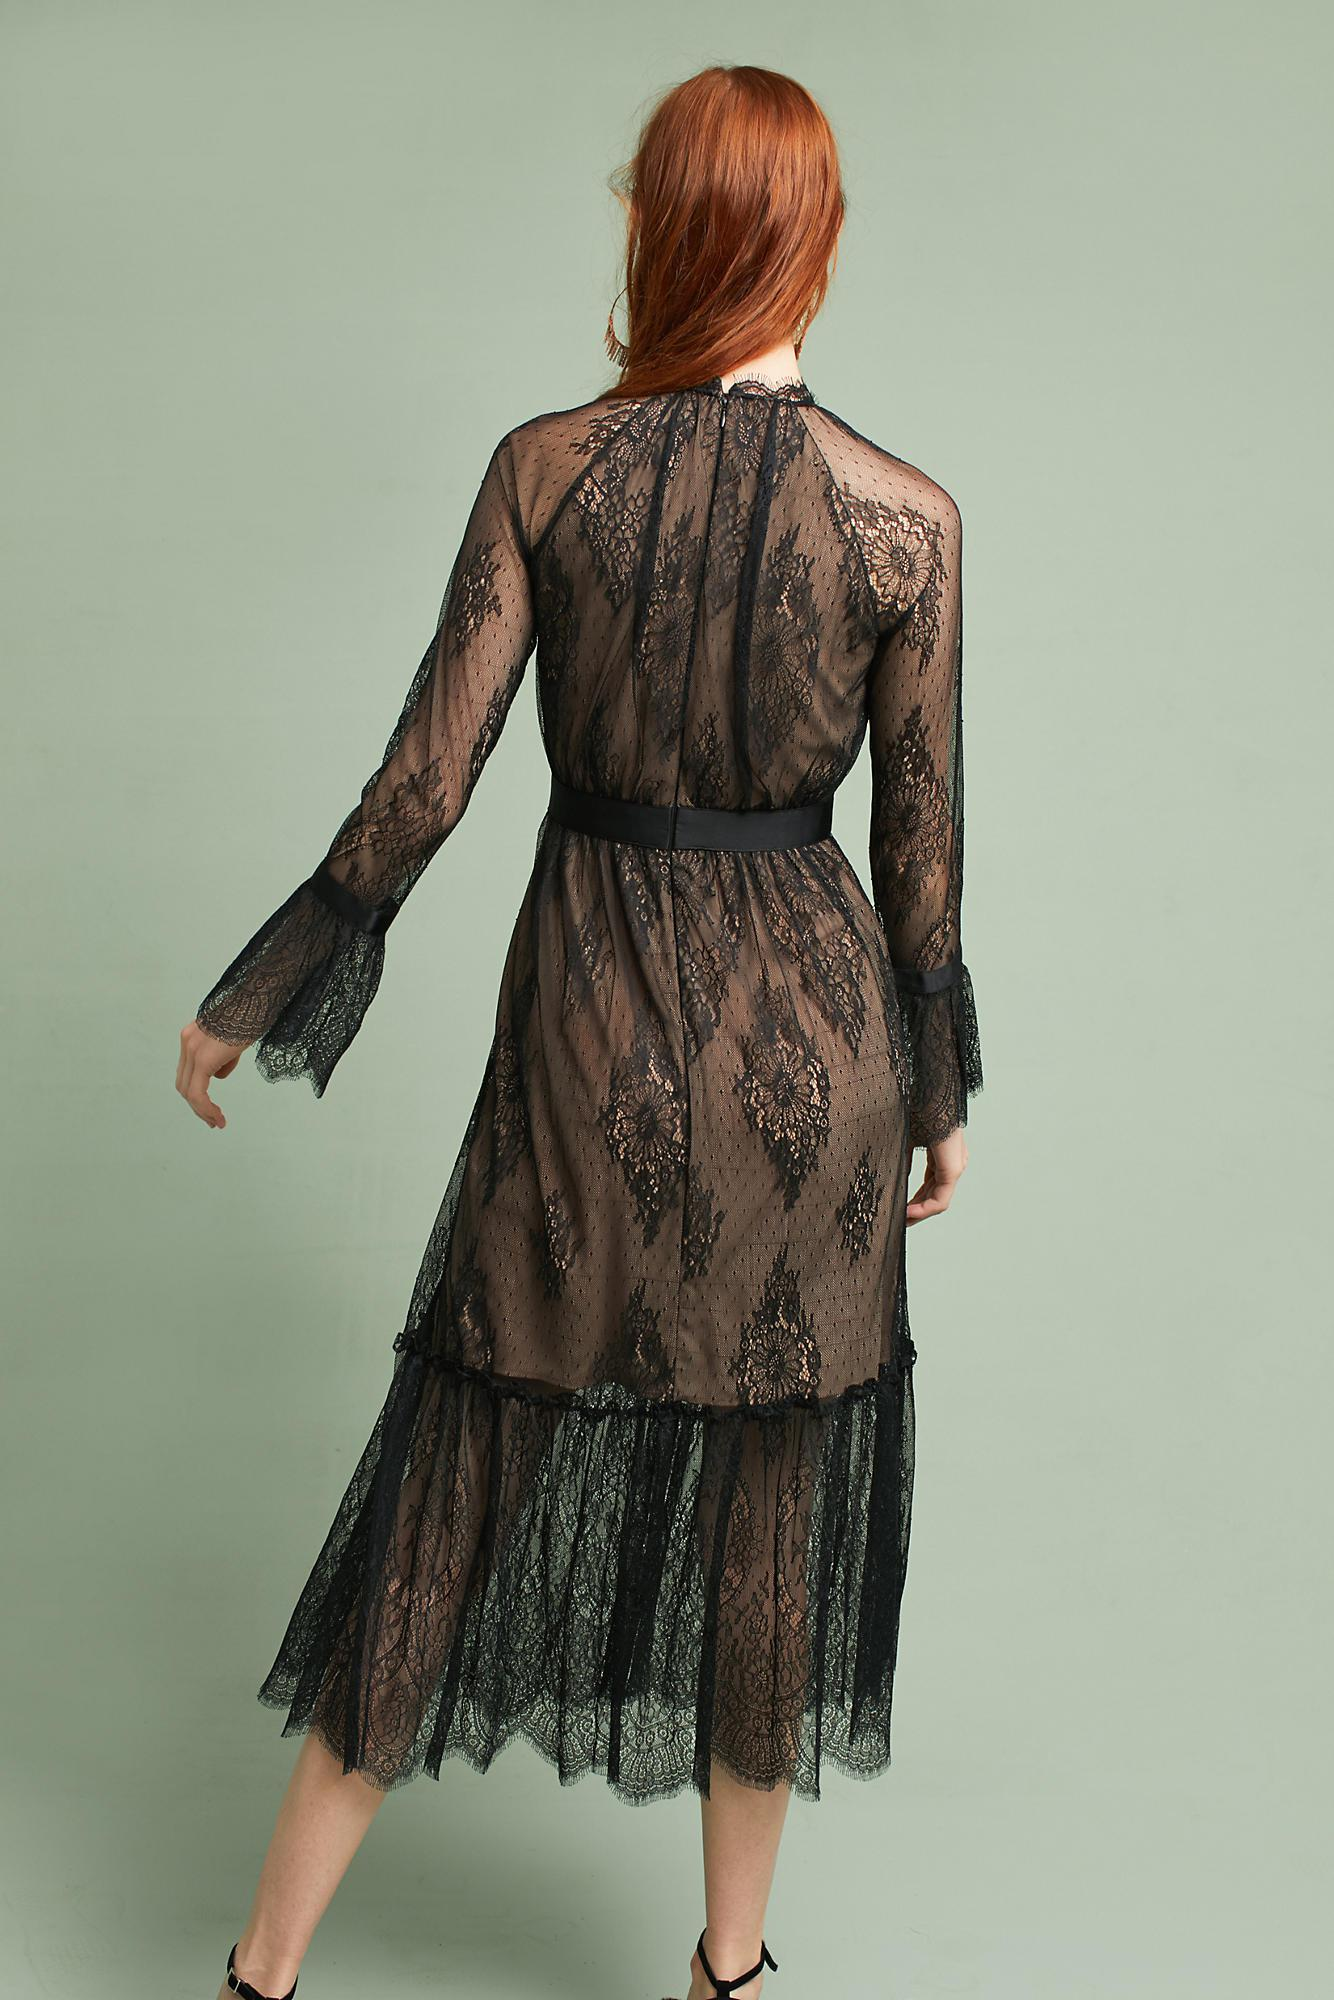 Lyst - Shoshanna Victorian Lace Dress in Black